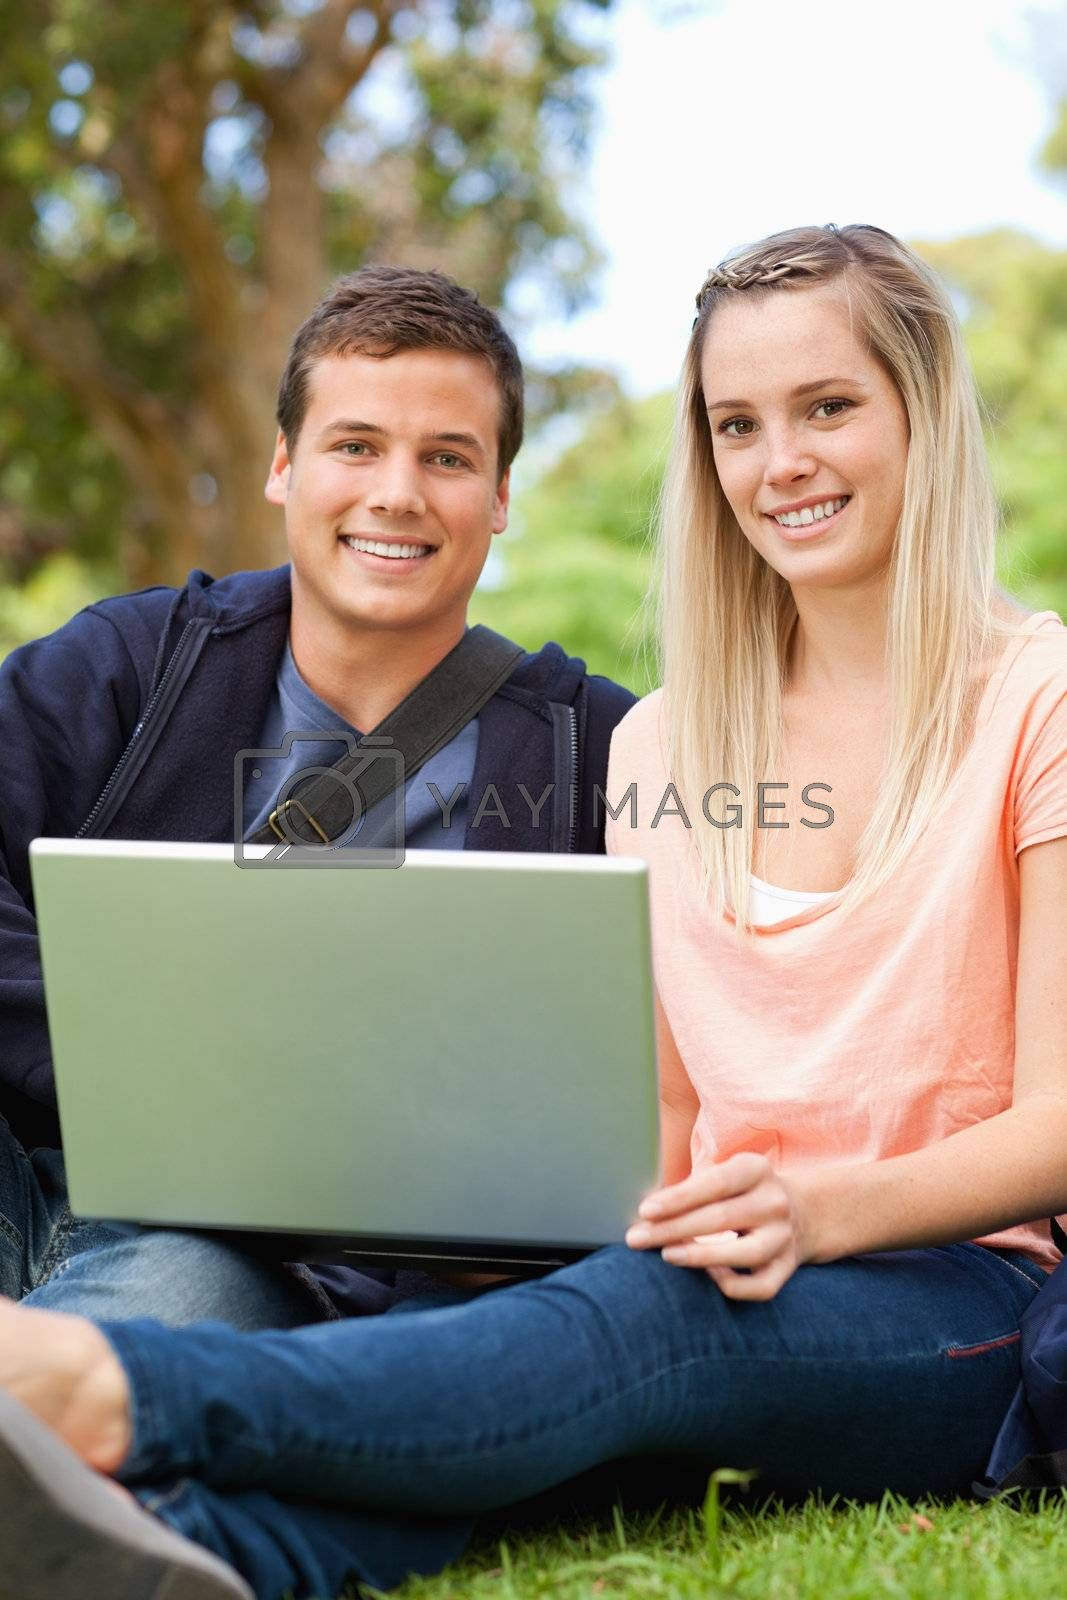 Portrait of young people laughing while sitting with a laptop in a park